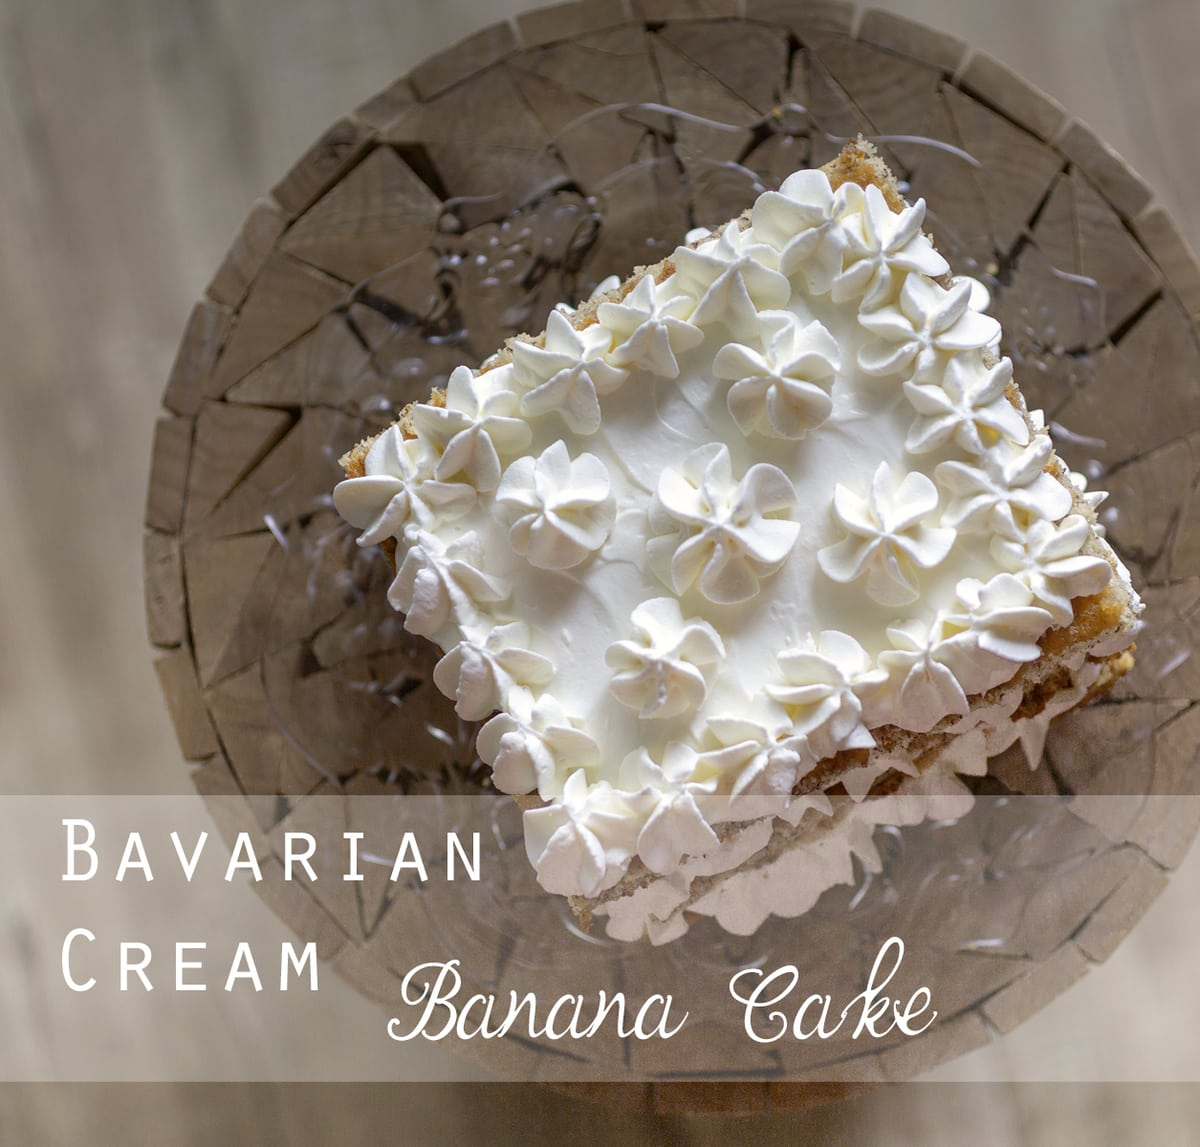 Bavarian Cream Banana Cake